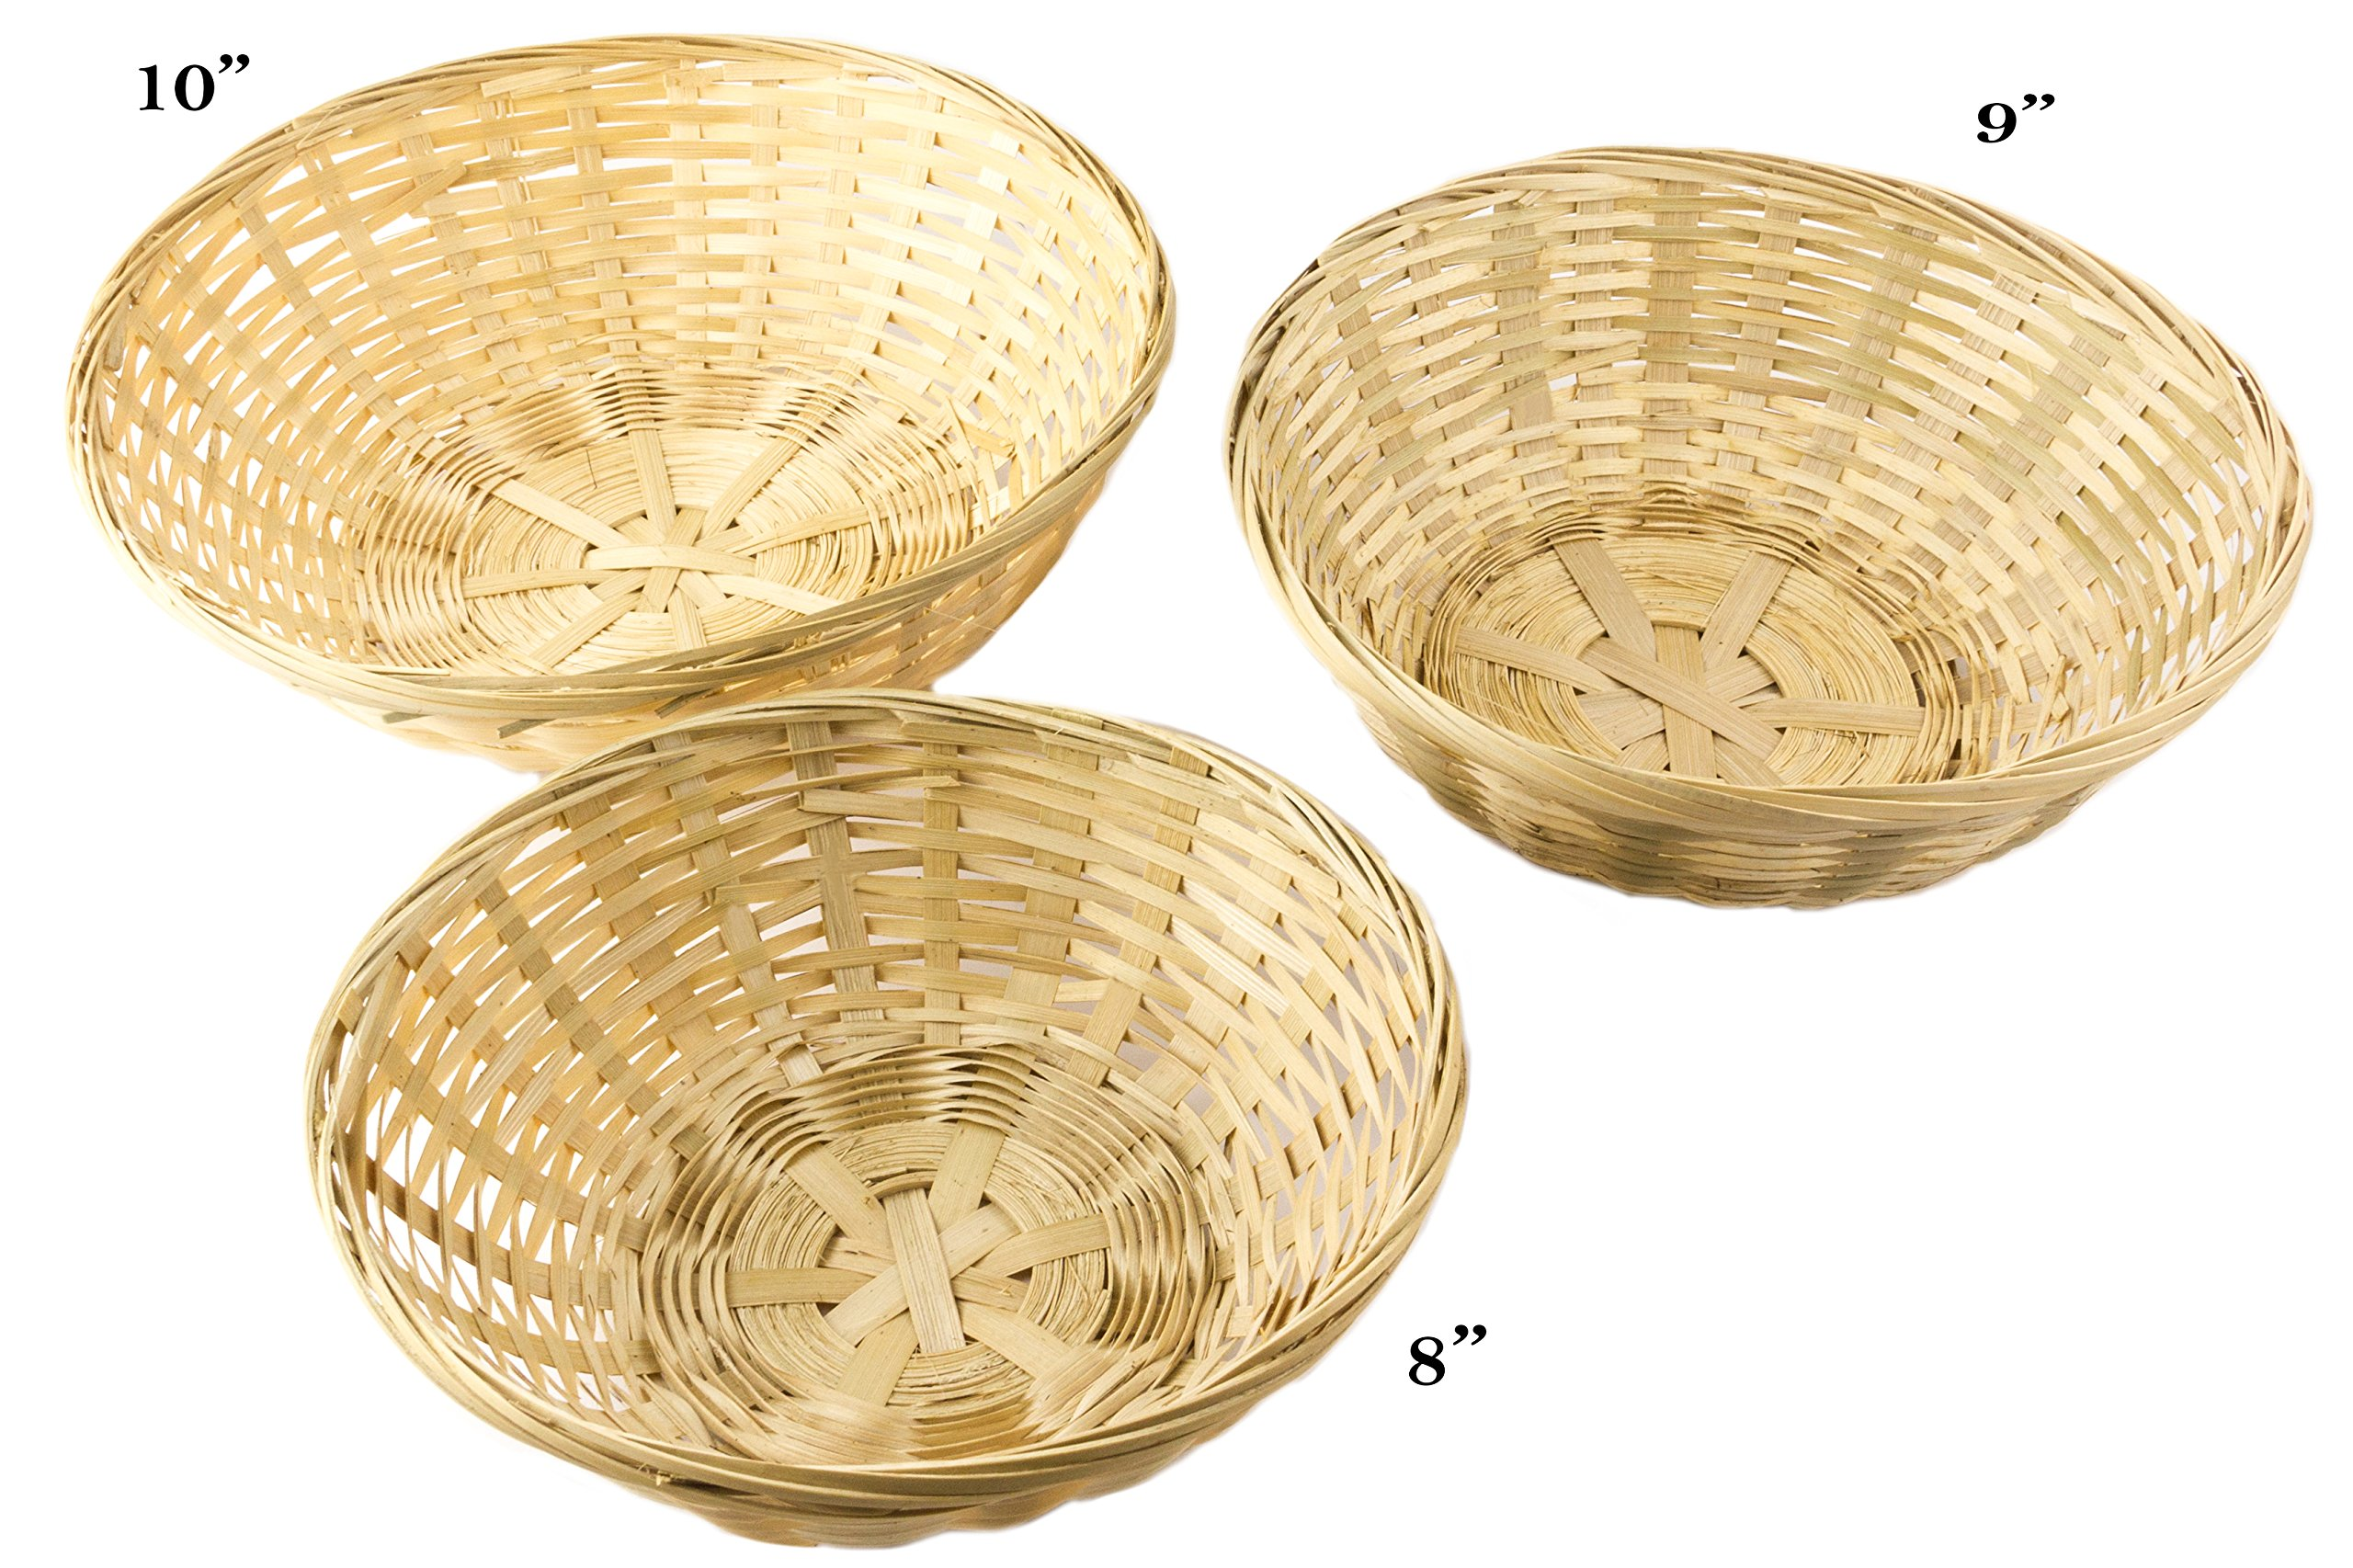 Red Co. Round Bamboo Stackable Bread Basket, Set of 3-10, 9 and 8 Inch by Red Co.